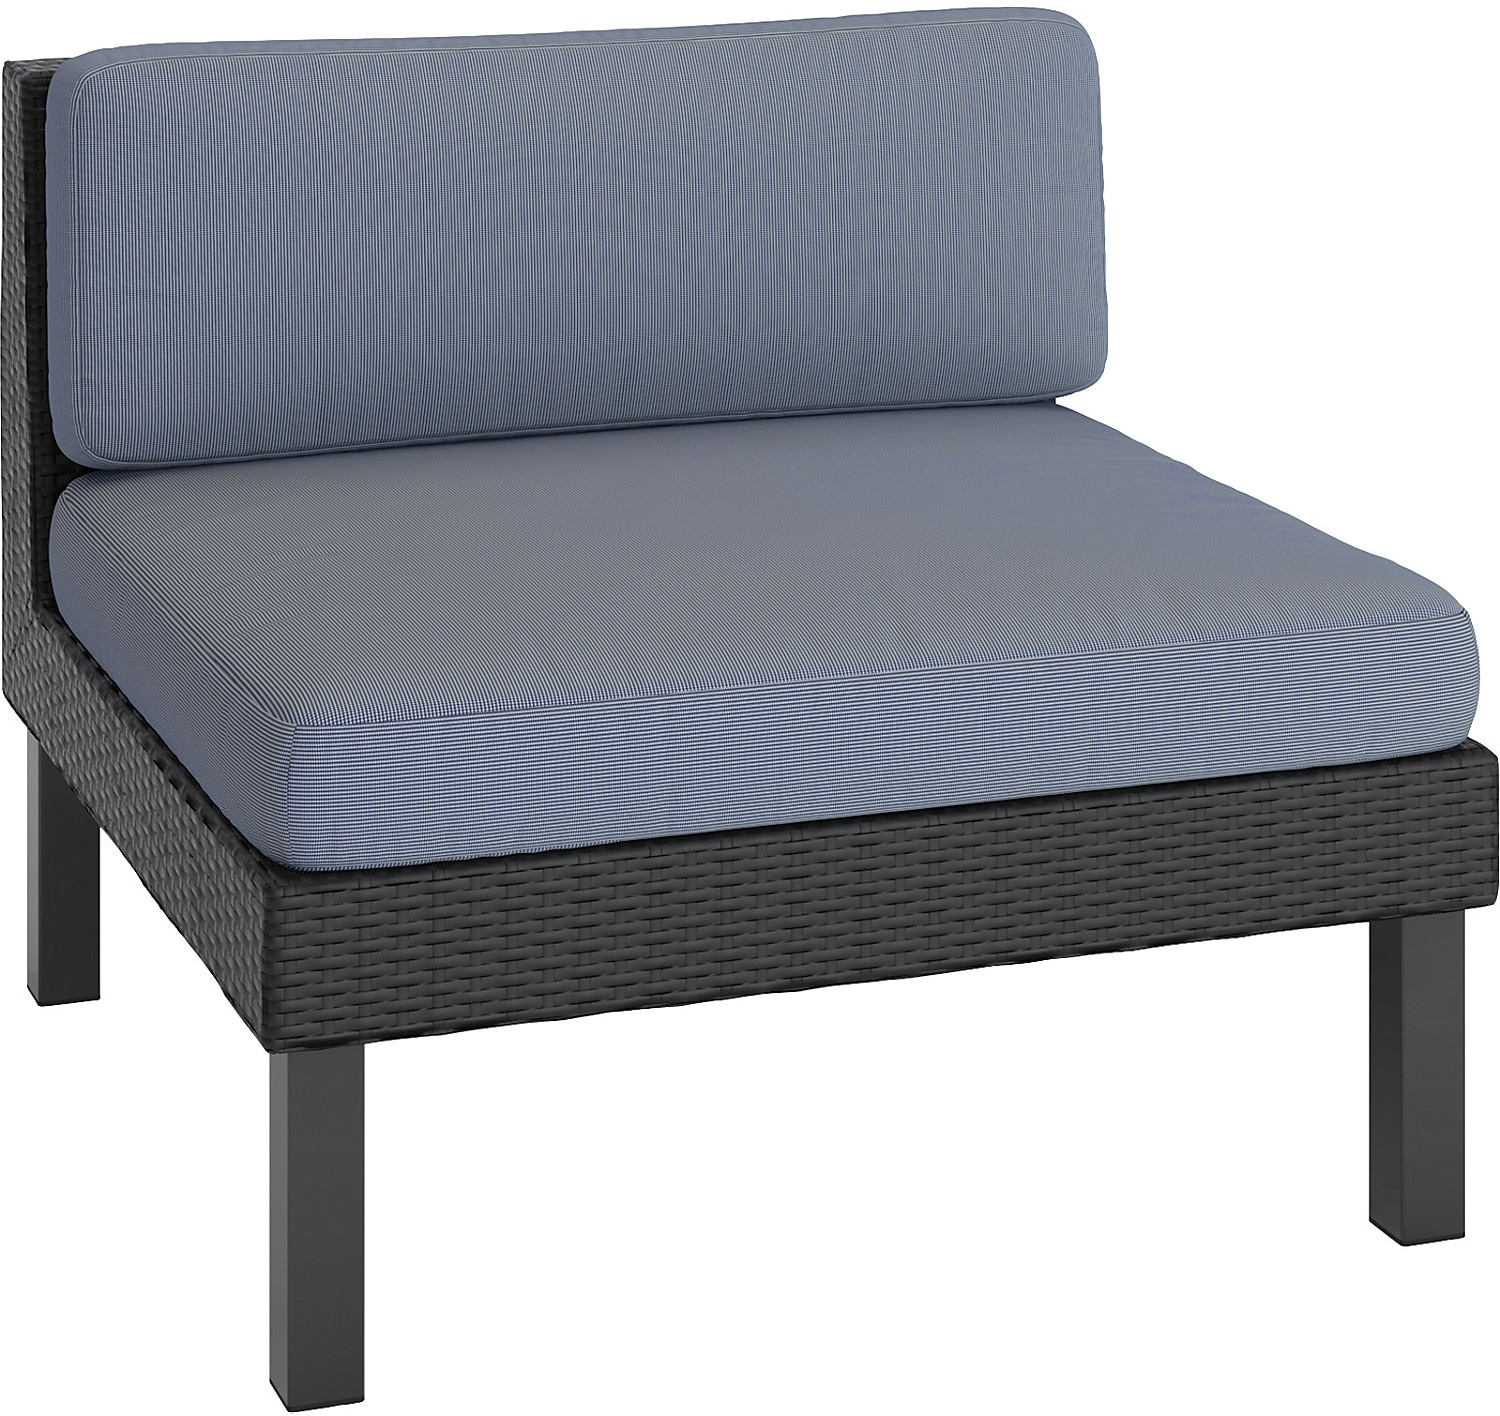 Outdoor Furniture - Oakland Patio Middle Seat